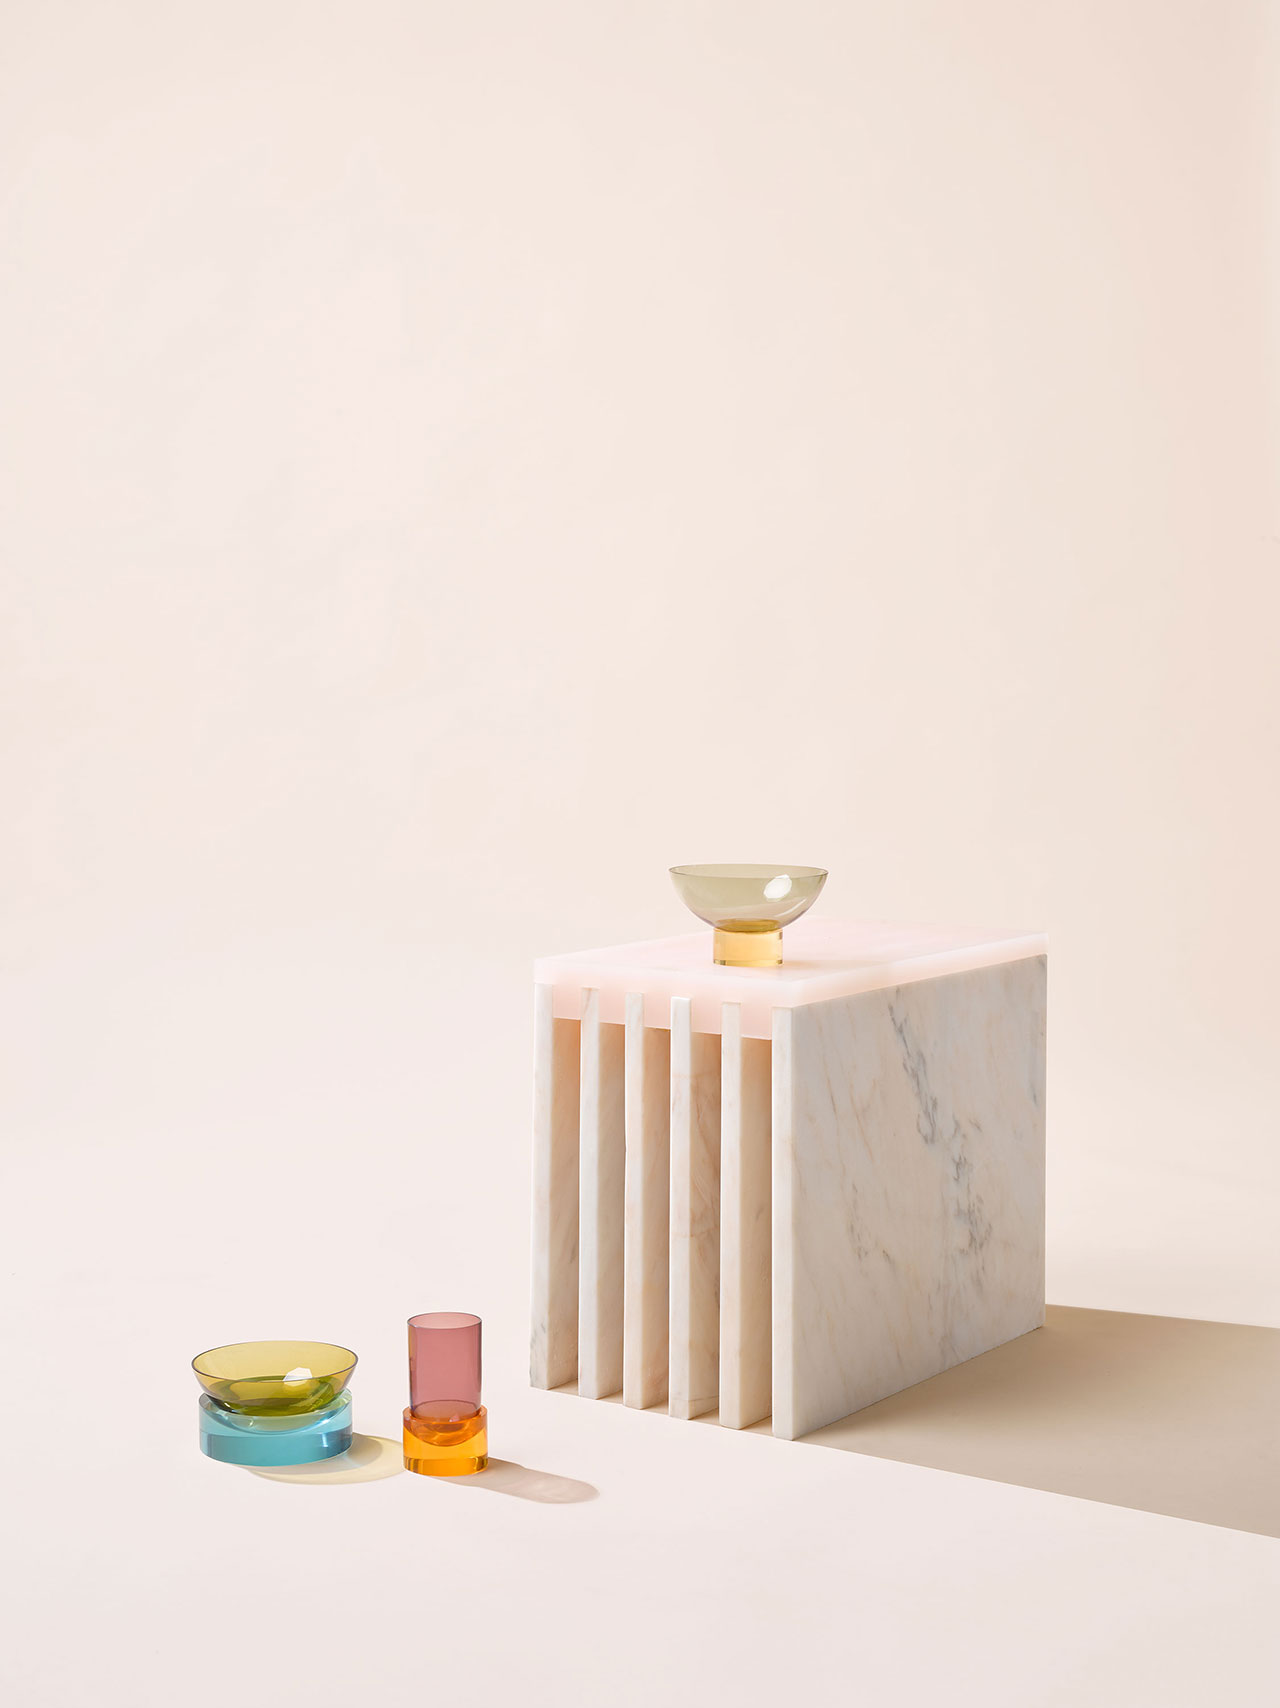 Objects of Common Interest, Side Table, 2016. Marble, Cast Acrylic. Relativity of Color glassware, 2017. Hand-blown Glass, Acrylic. Photo by Brooke Holm.